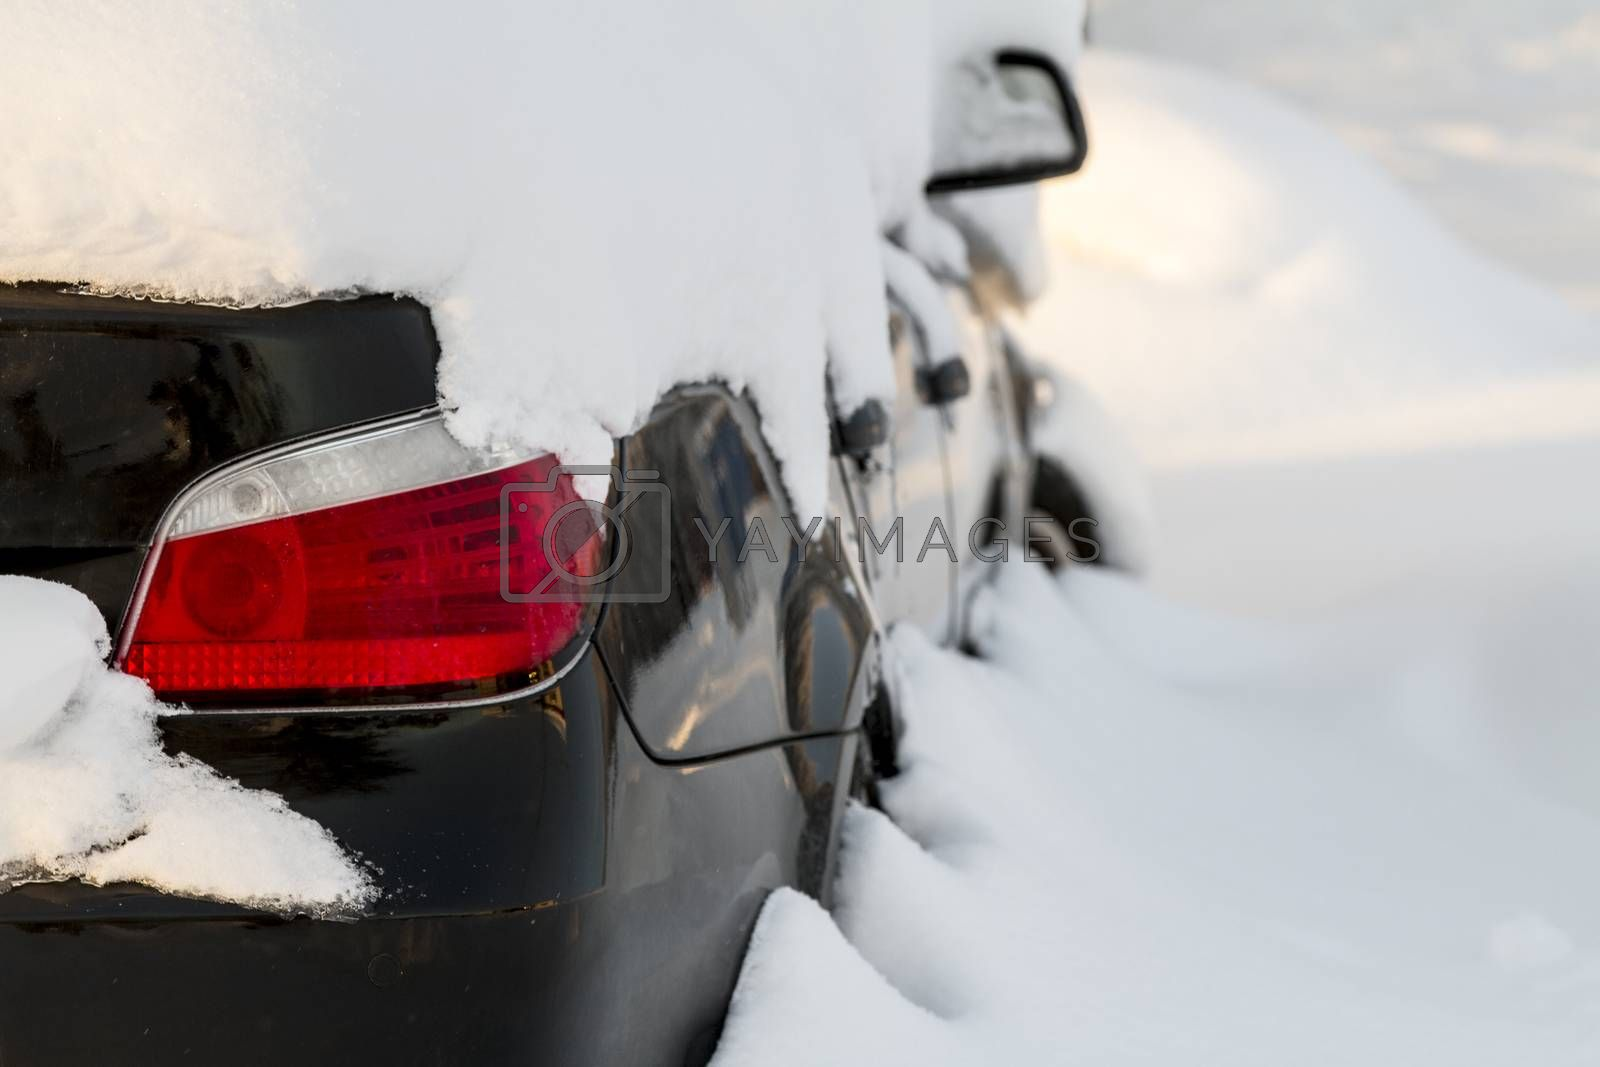 Car covered in snow not able to move any where